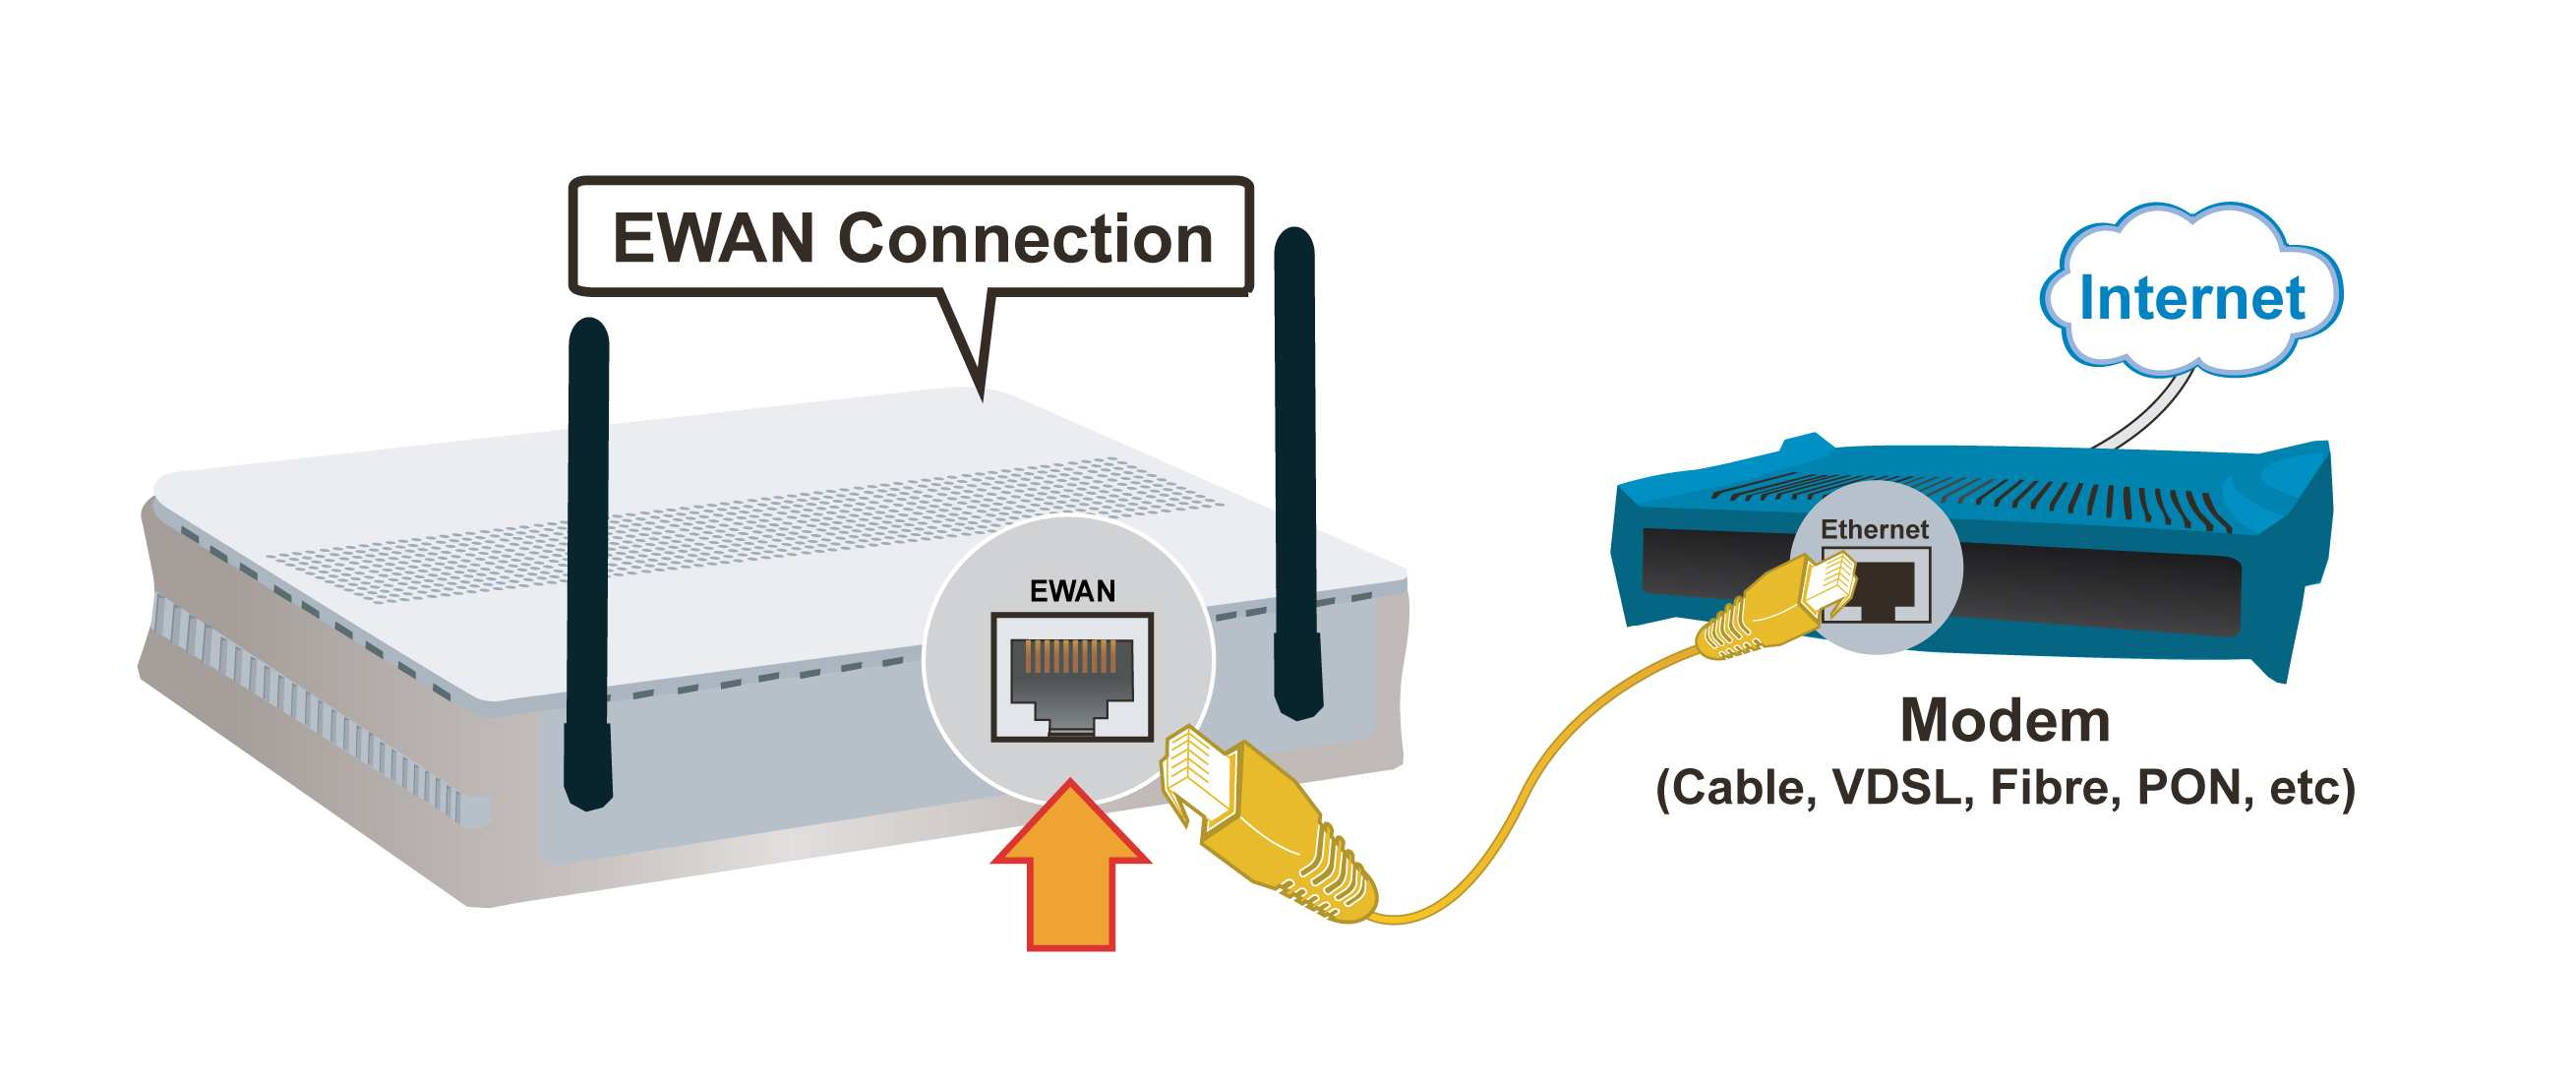 (please refer to User Manual for detail instruction.) Connecting to the Router 1. Open the web browser and type http://192.168.1.254 in the browser's address box.